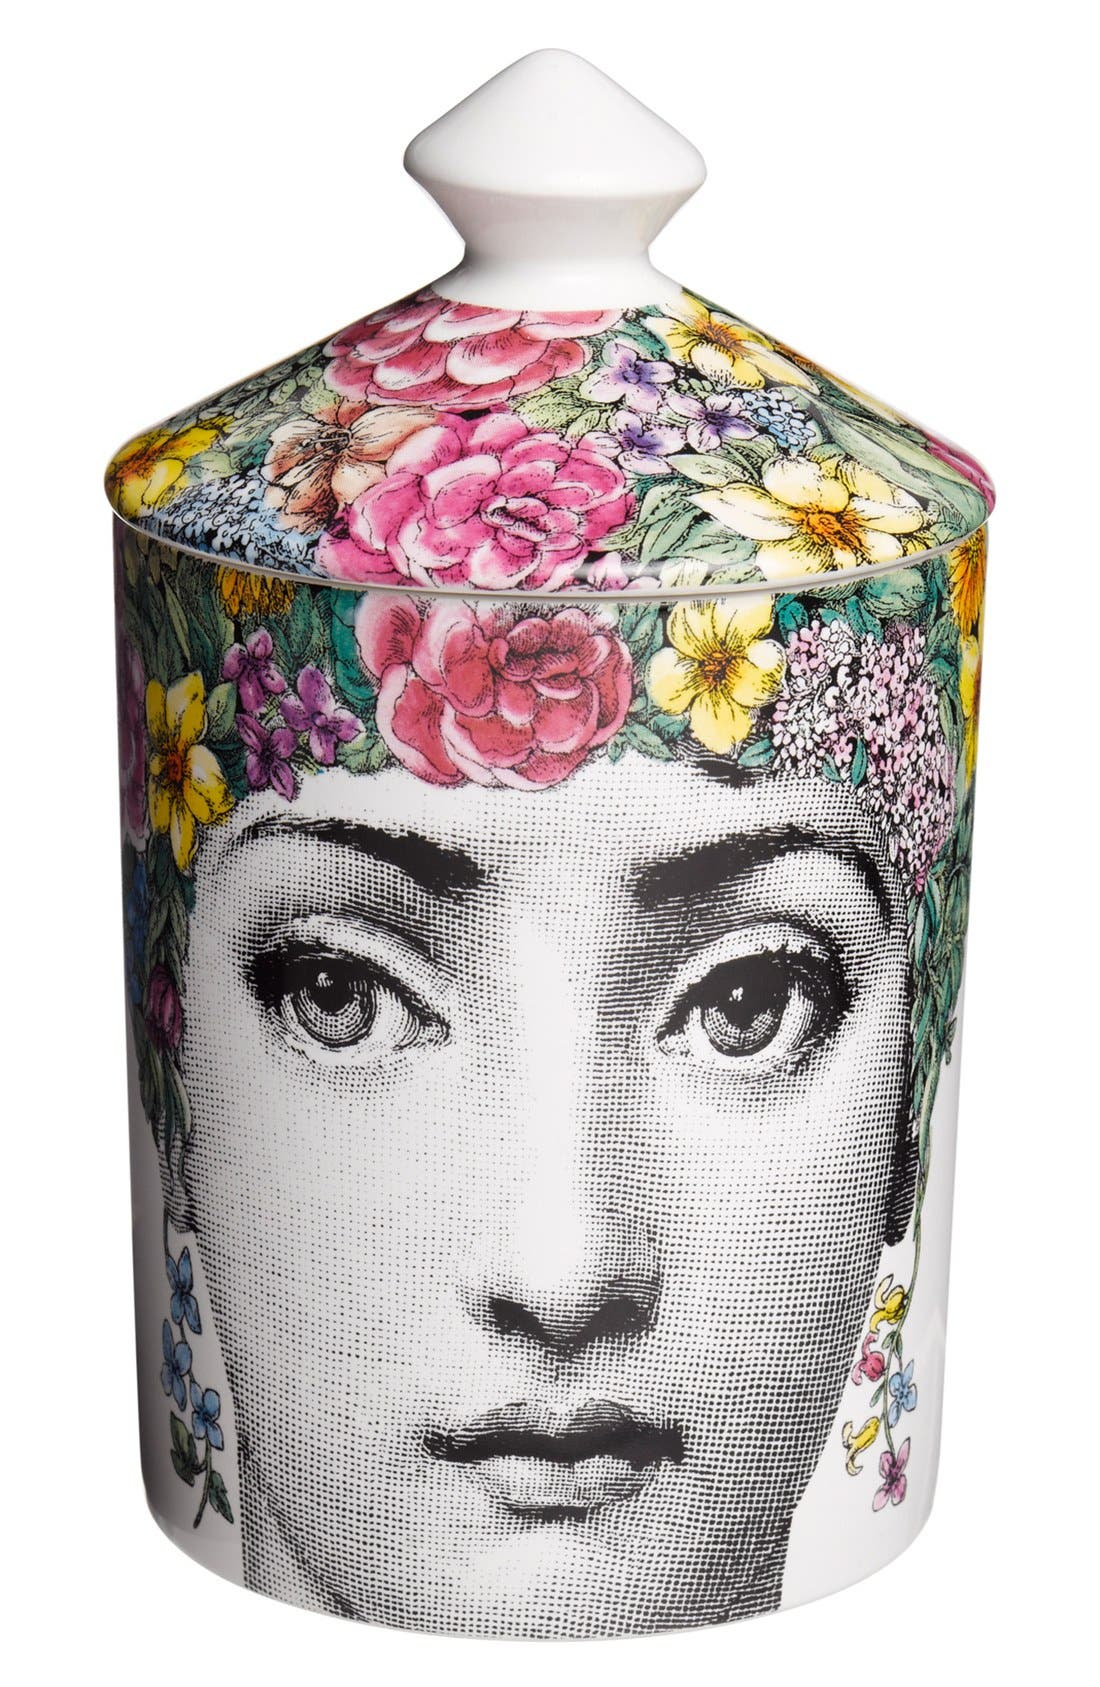 Fornasetti 'Flora' Lidded Candle